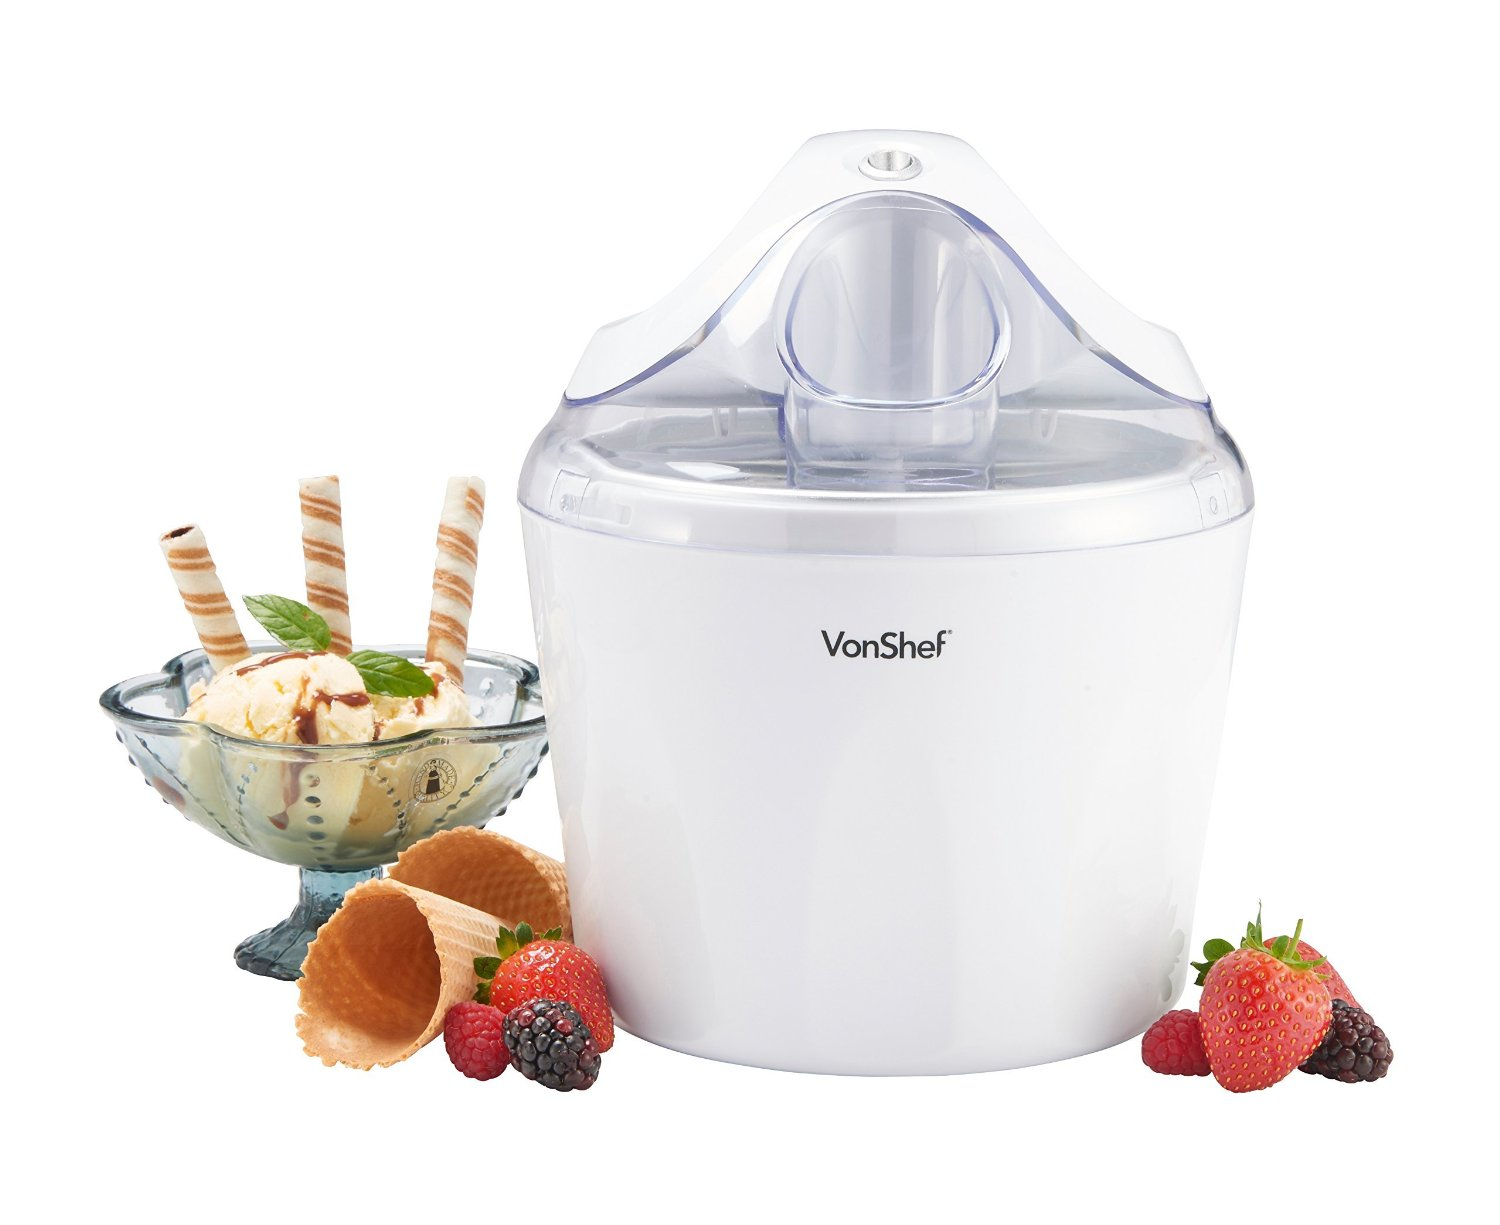 ice cream maker, fathers day gift, tech gifts, kitchen appliances